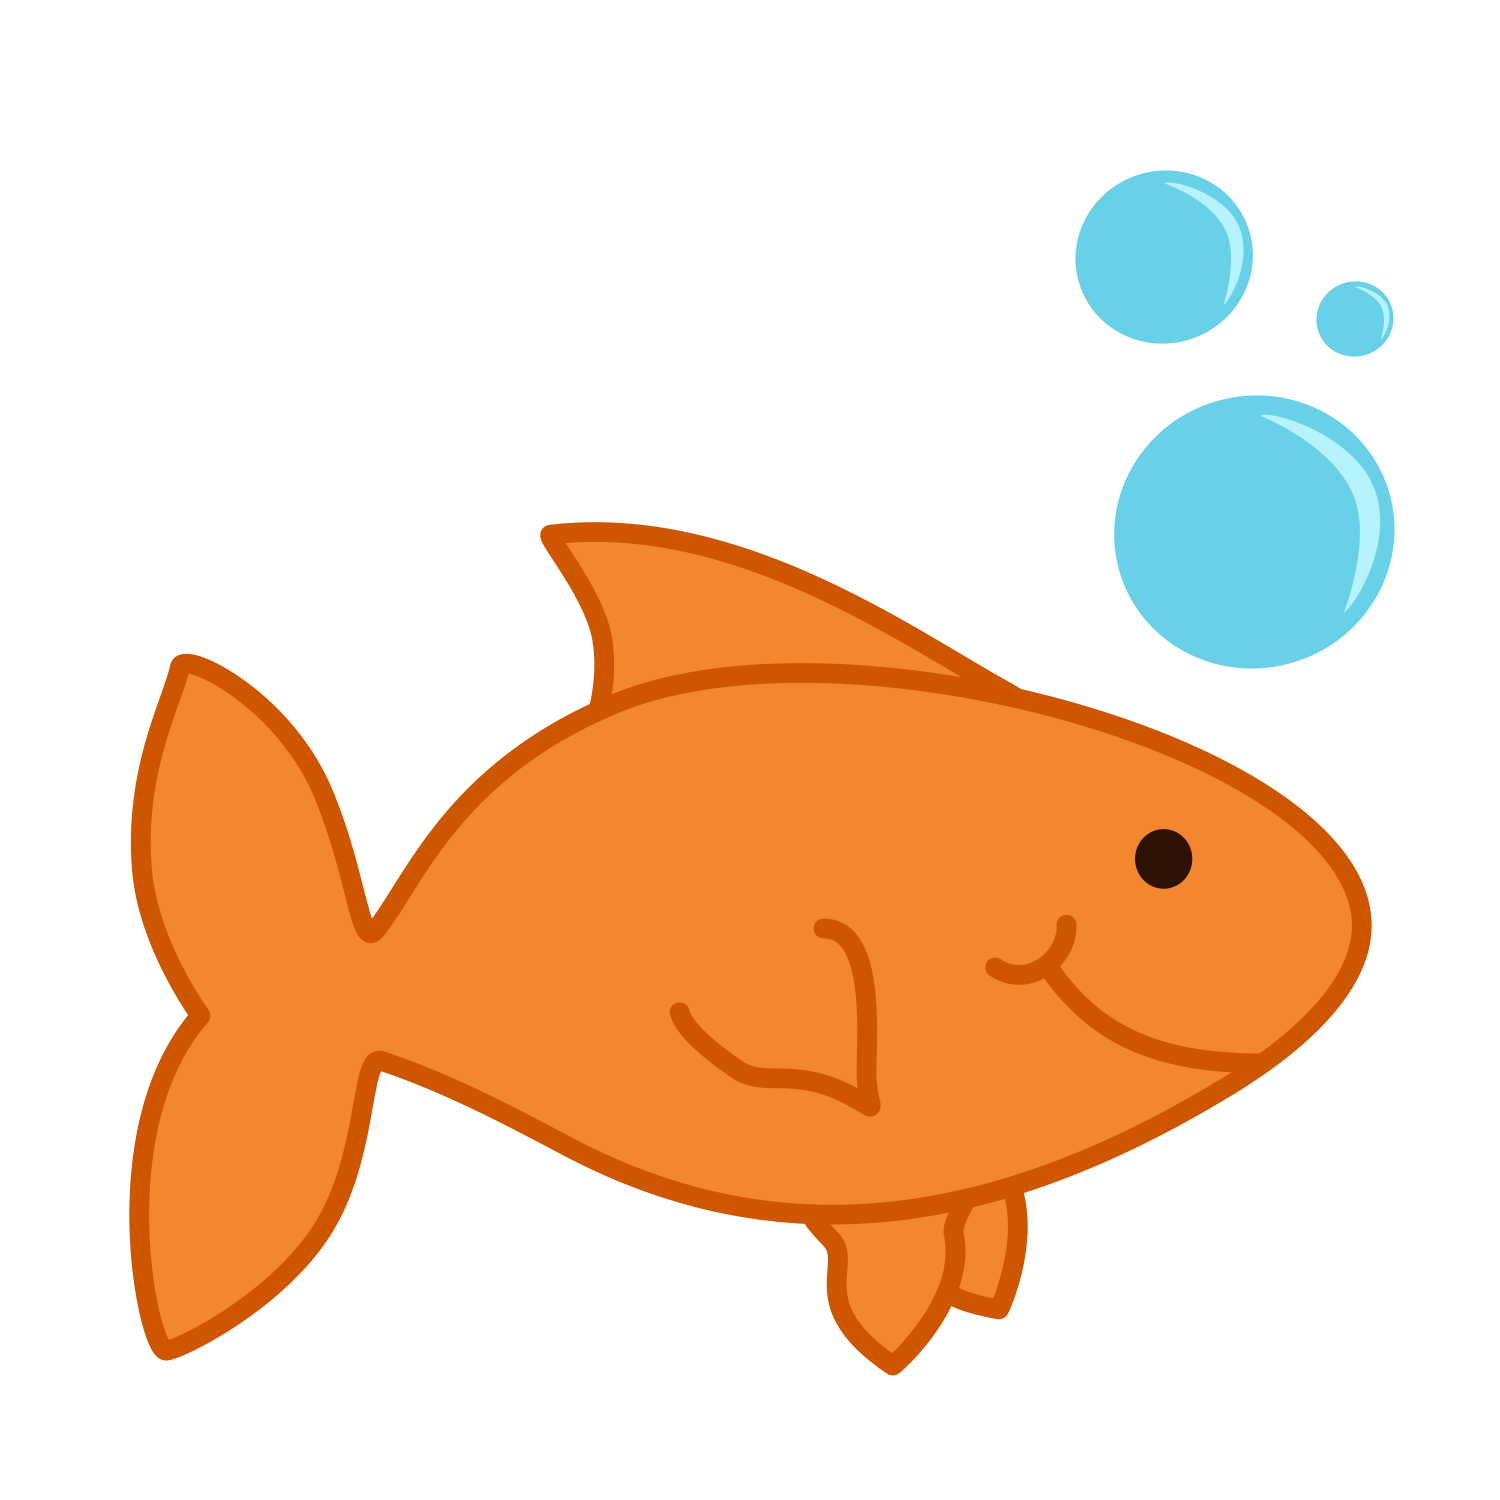 Yellow clipart goldfish cracker Images Free Goldfish Clipart Clipart